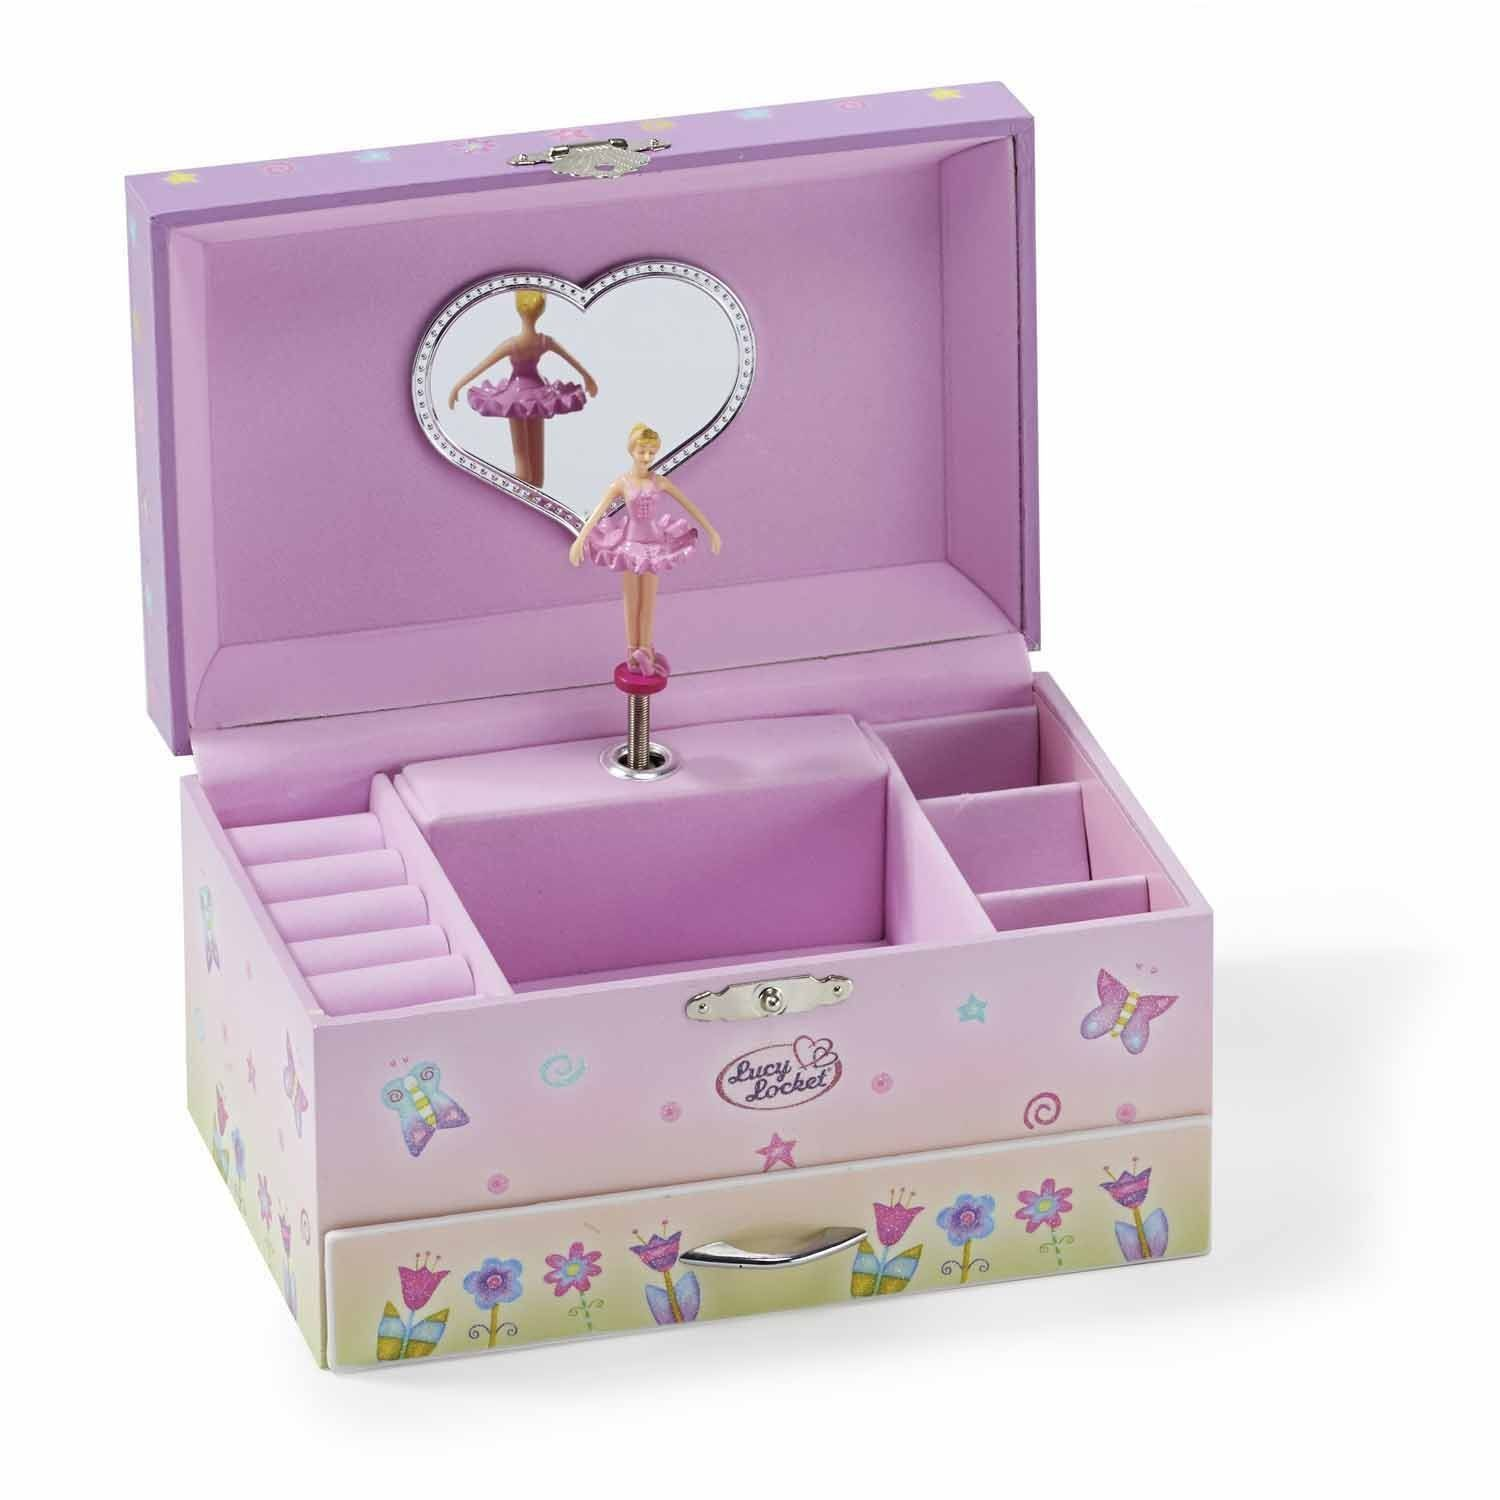 Pretty Jewelry Box Fairy Tale Kids Musical Jewelry Box  Pink Glittery Kids Music Box